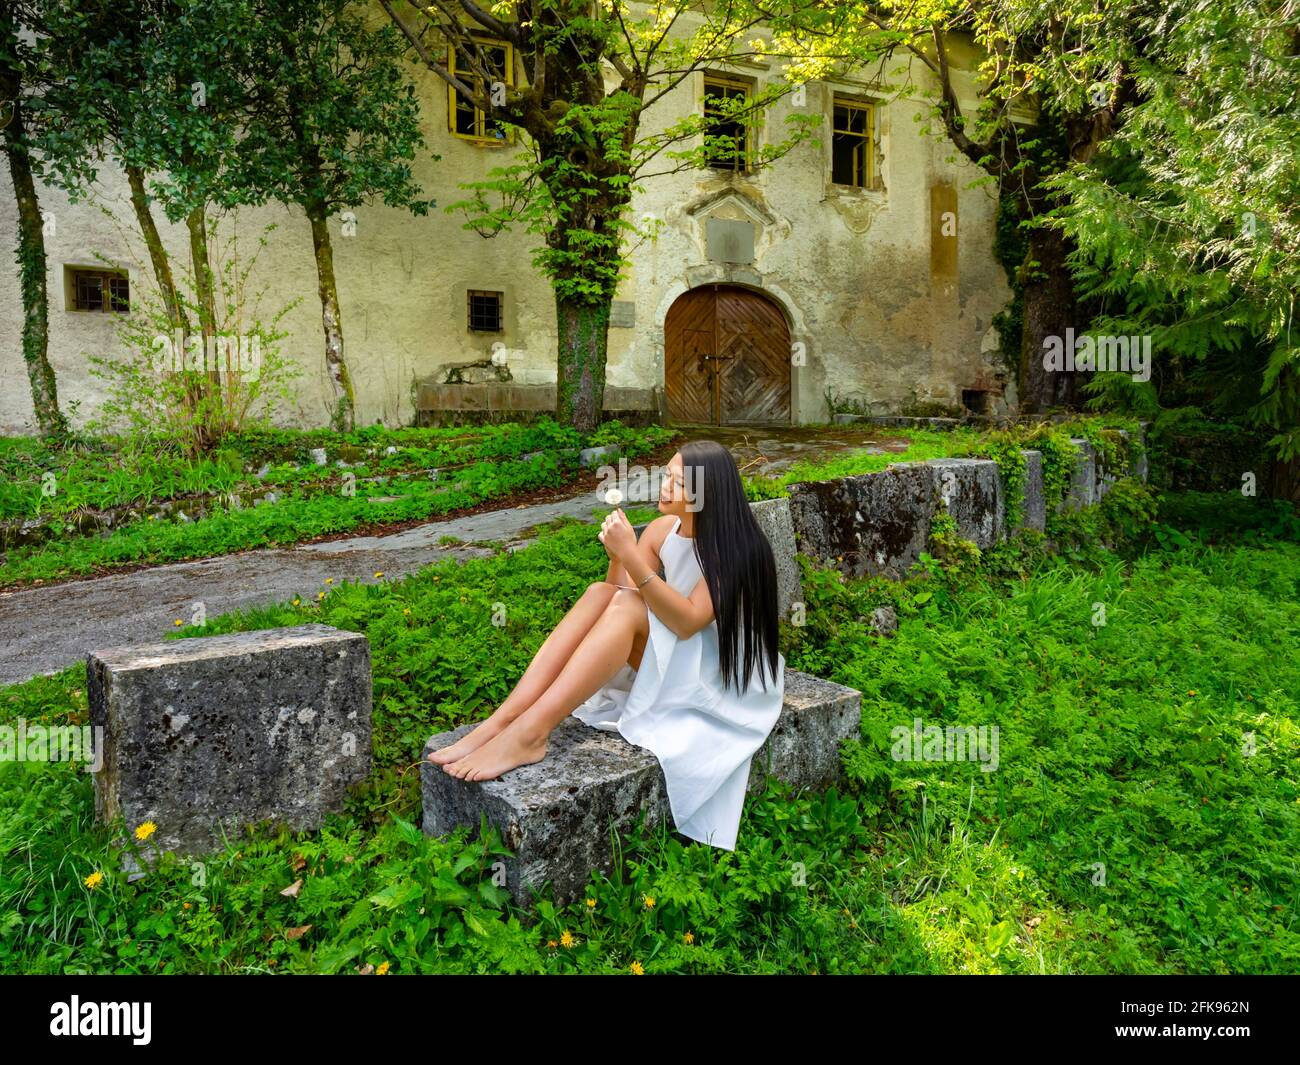 Make a wish young woman sitting barefeet with dandelion flower in hand in park before abandoned fort building Stock Photo